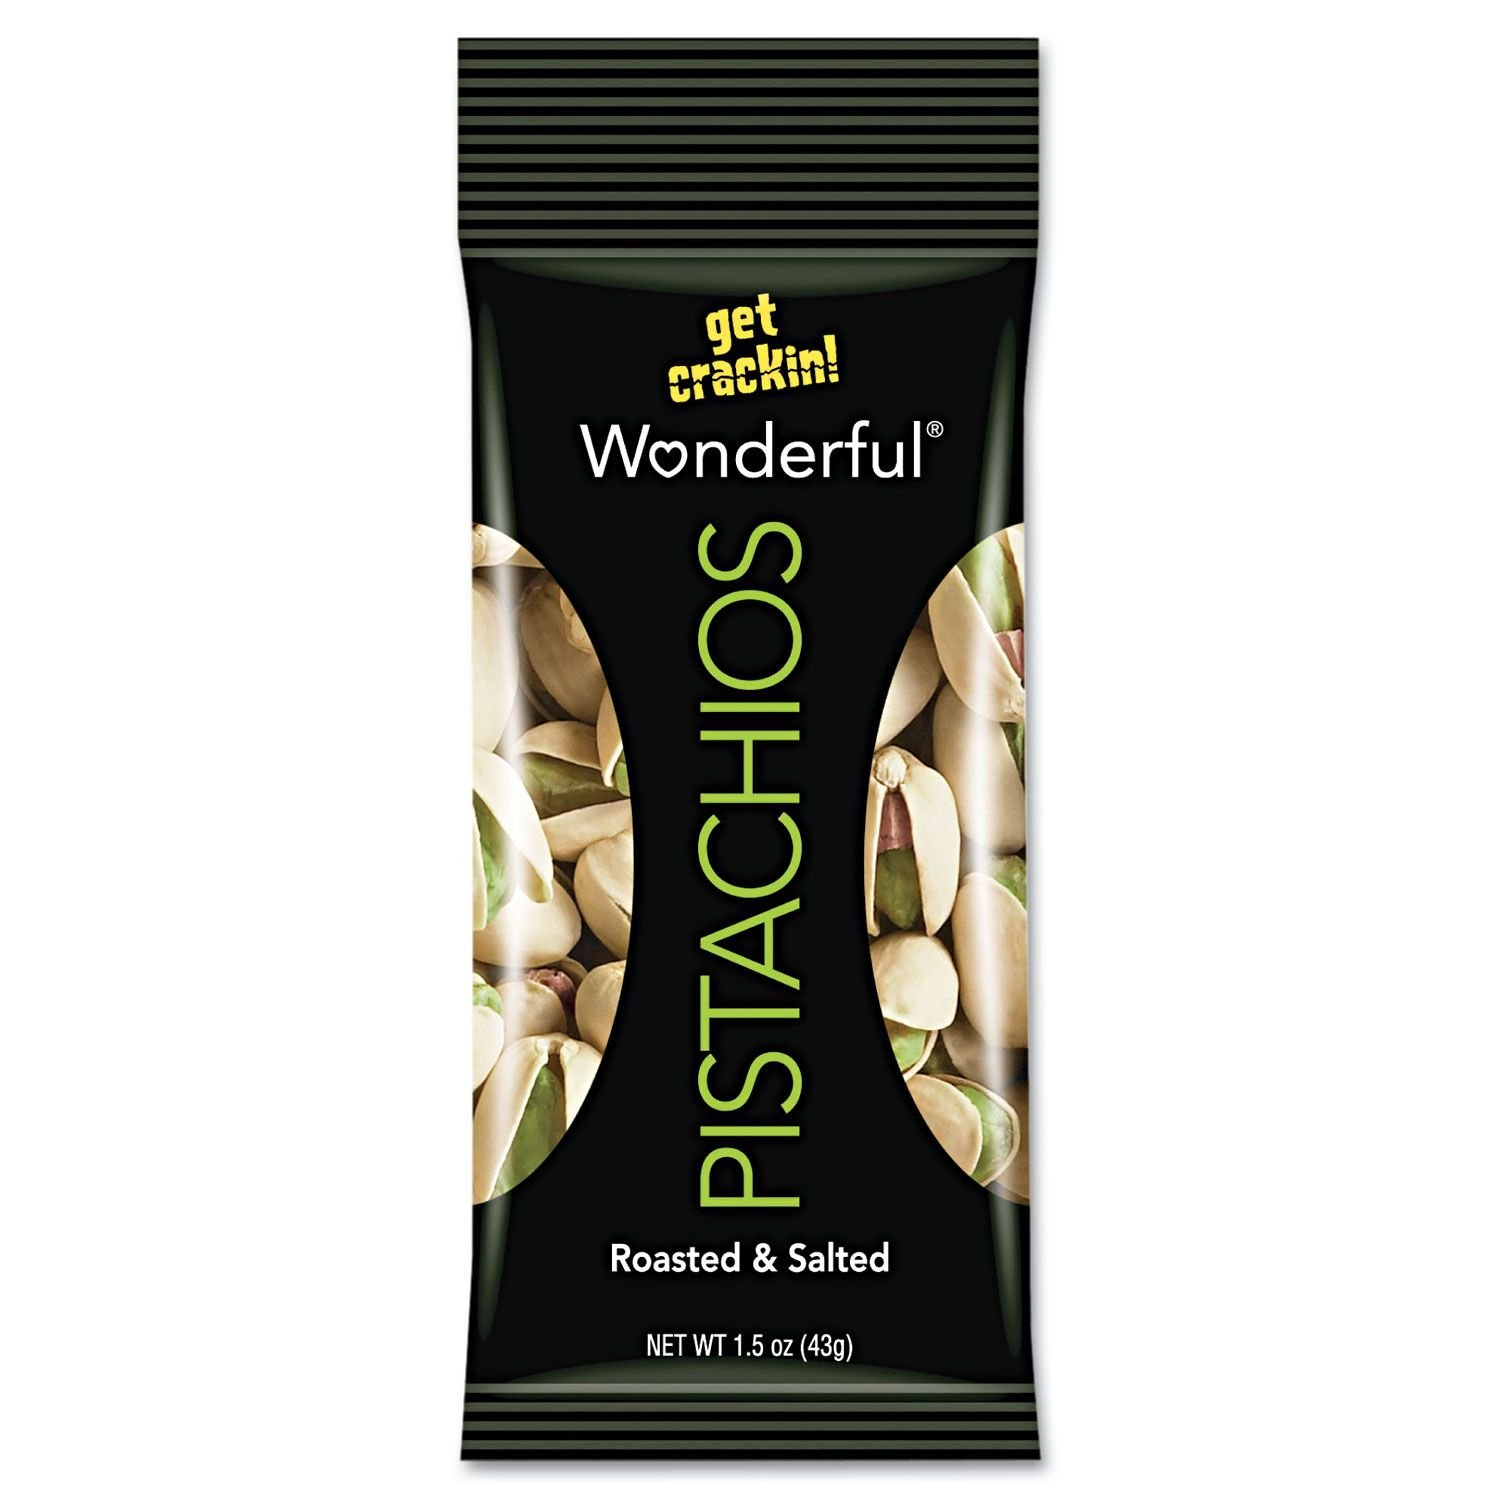 Wonderful Pistachios (1.5 oz, 12 pks. 18 total Oz.)